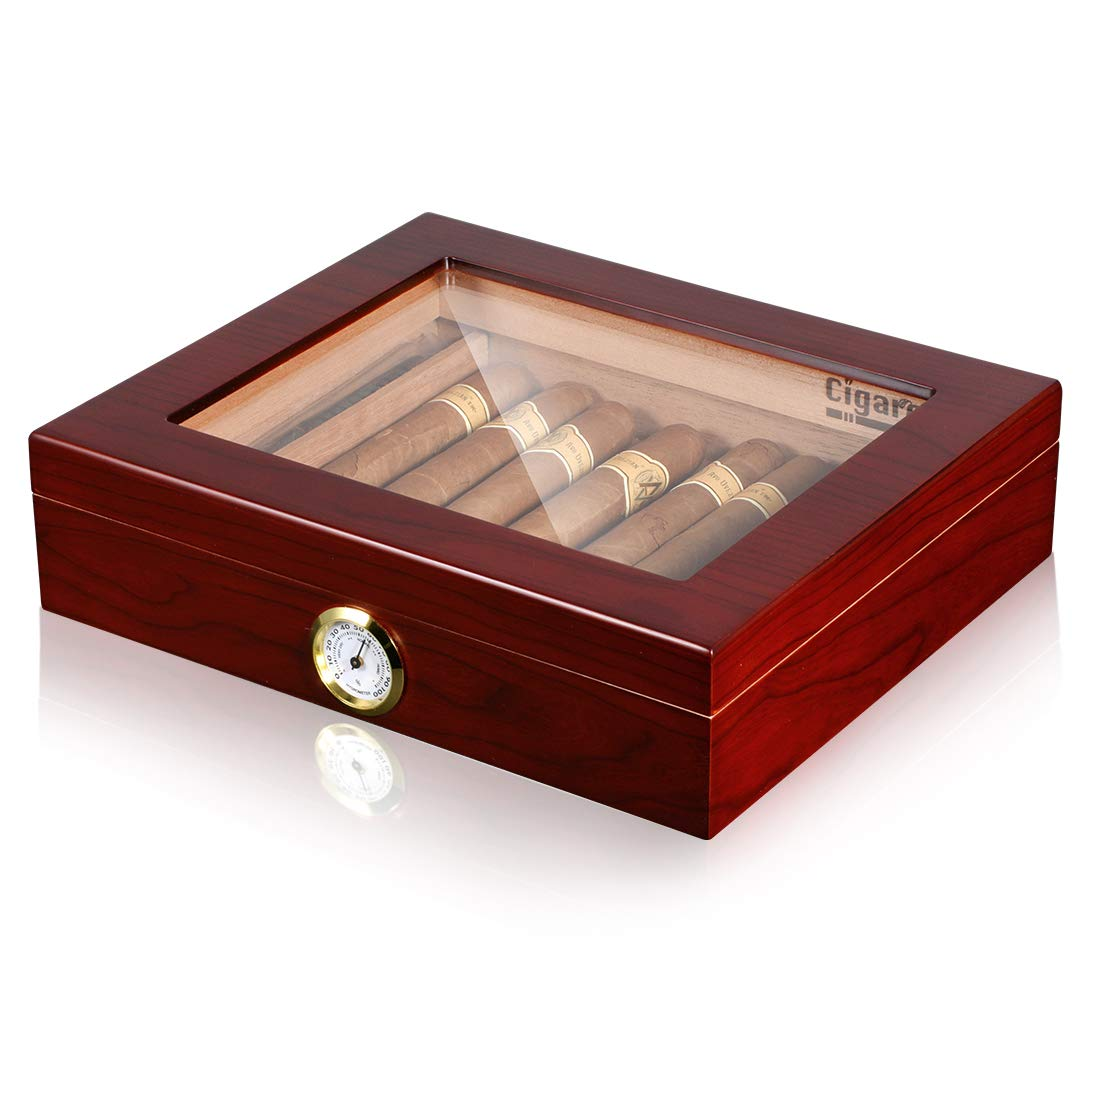 Volenx Desktop Cigar Humidor Case Glasstop Cigar Storage Box, Cherry Finish with Hygrometer and Humidifier Holds 25 Cigars